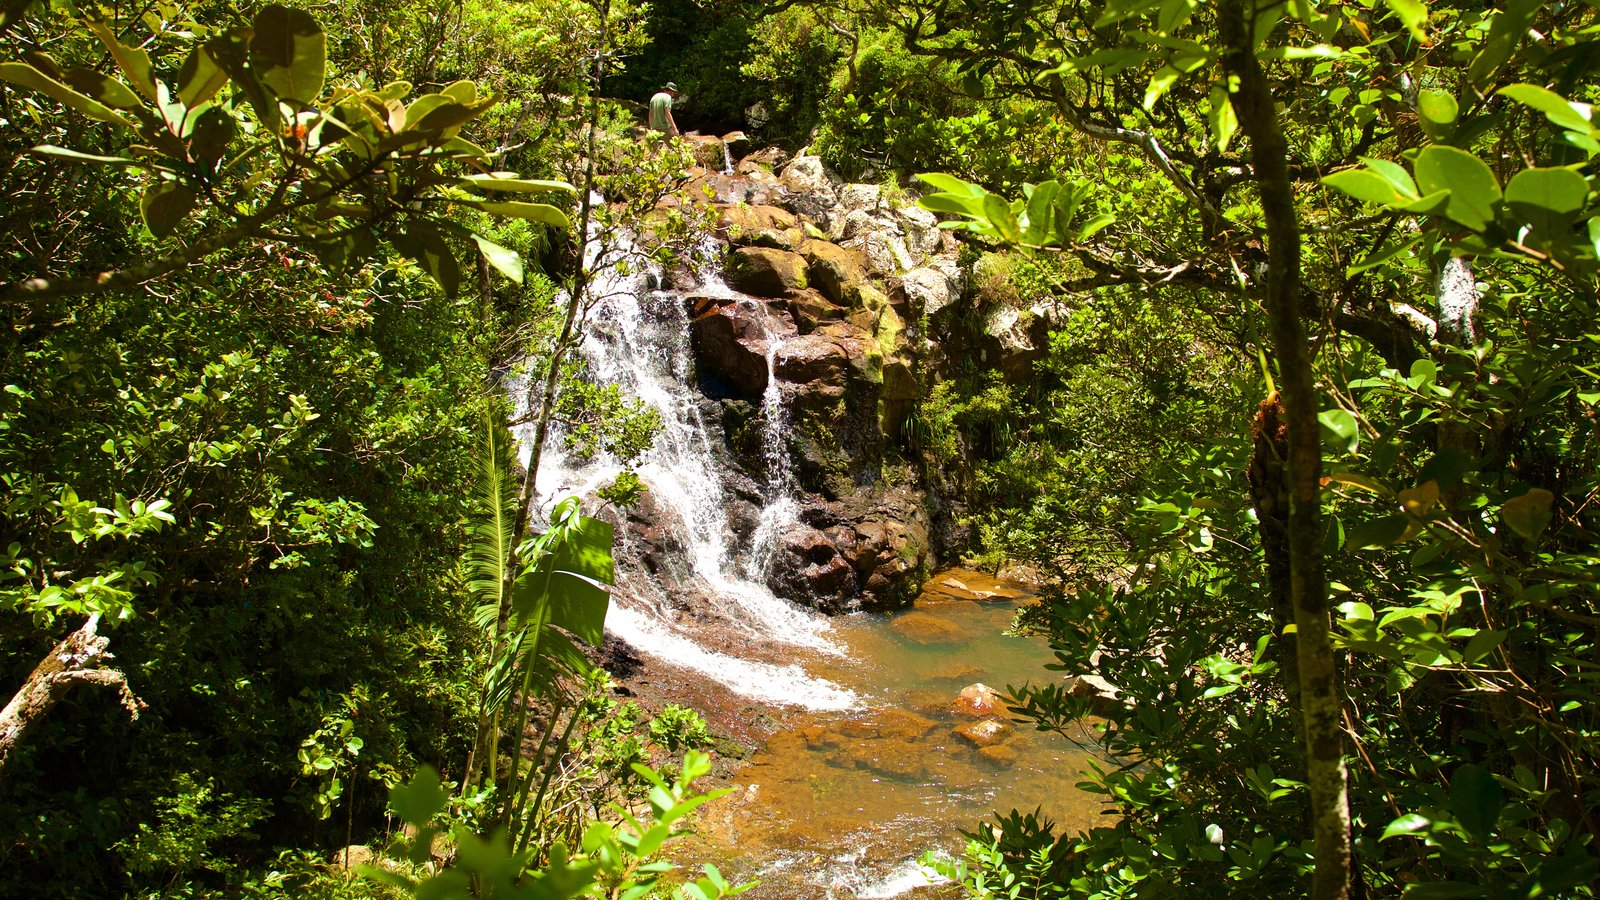 Black River Gorges National Park which includes rainforest, a pond and a cascade